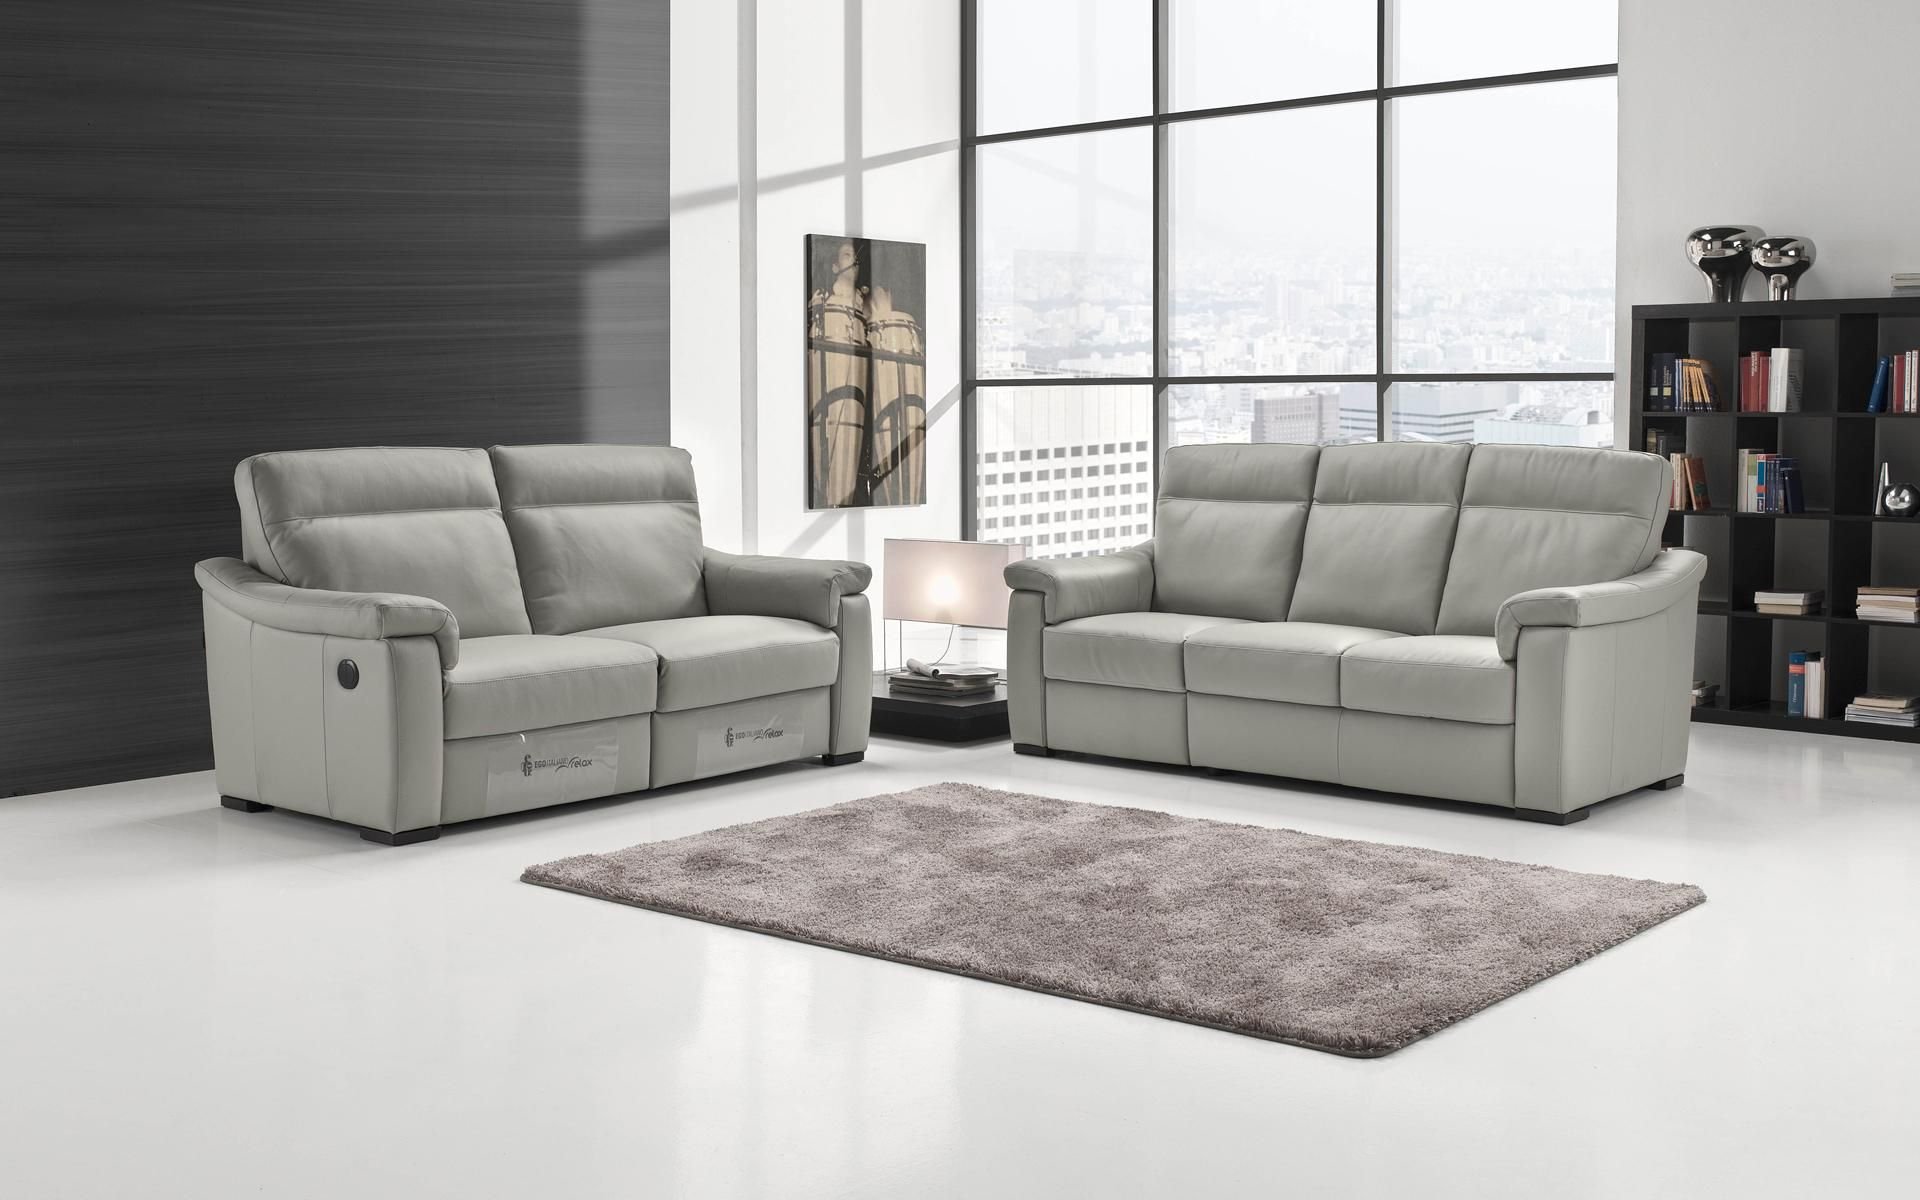 New In Showroom Newry Furniture Centre King Koil Specials Fama Sofas King Koil Ireland King Koil Mattress I Furniture Contemporary Sofa Beds Ireland